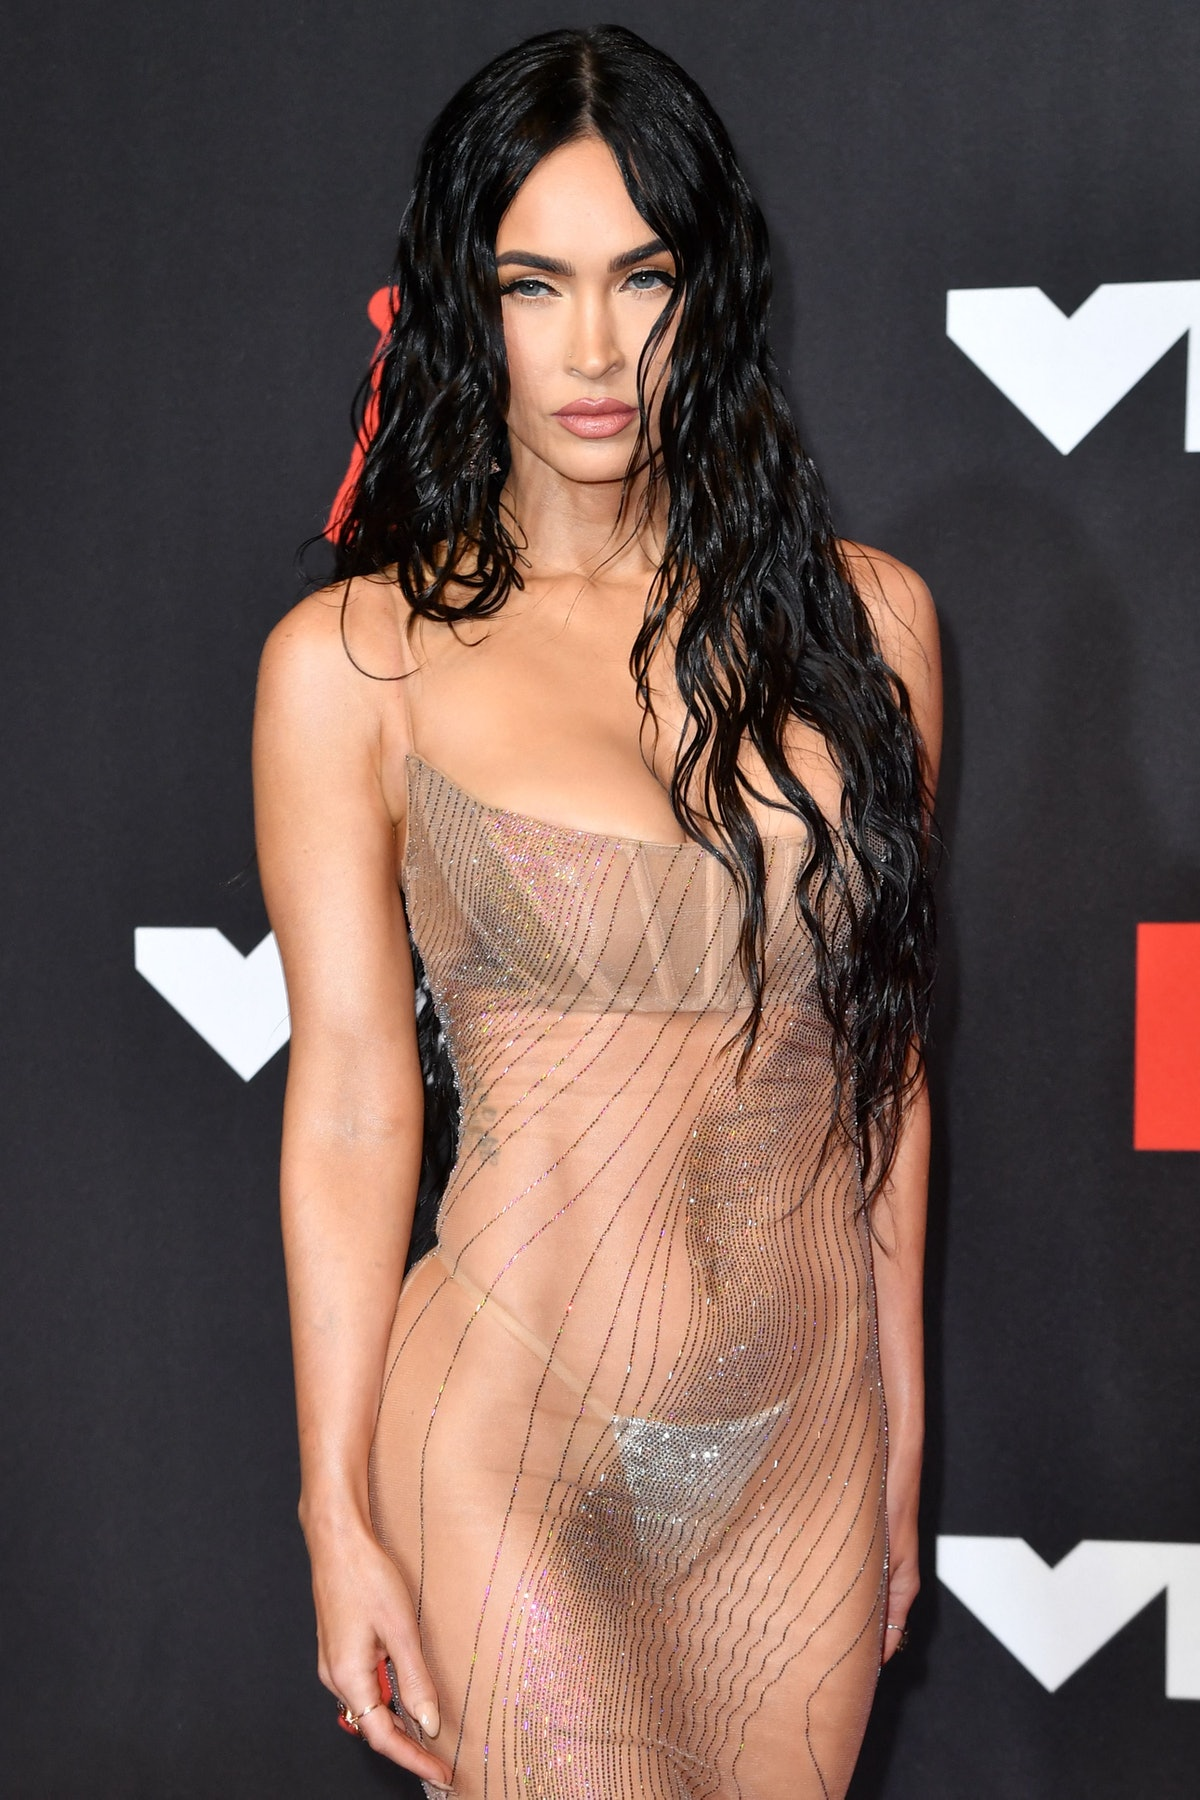 Megan Fox arrives for the 2021 MTV Video Music Awards at Barclays Center in Brooklyn, New York, Sept...